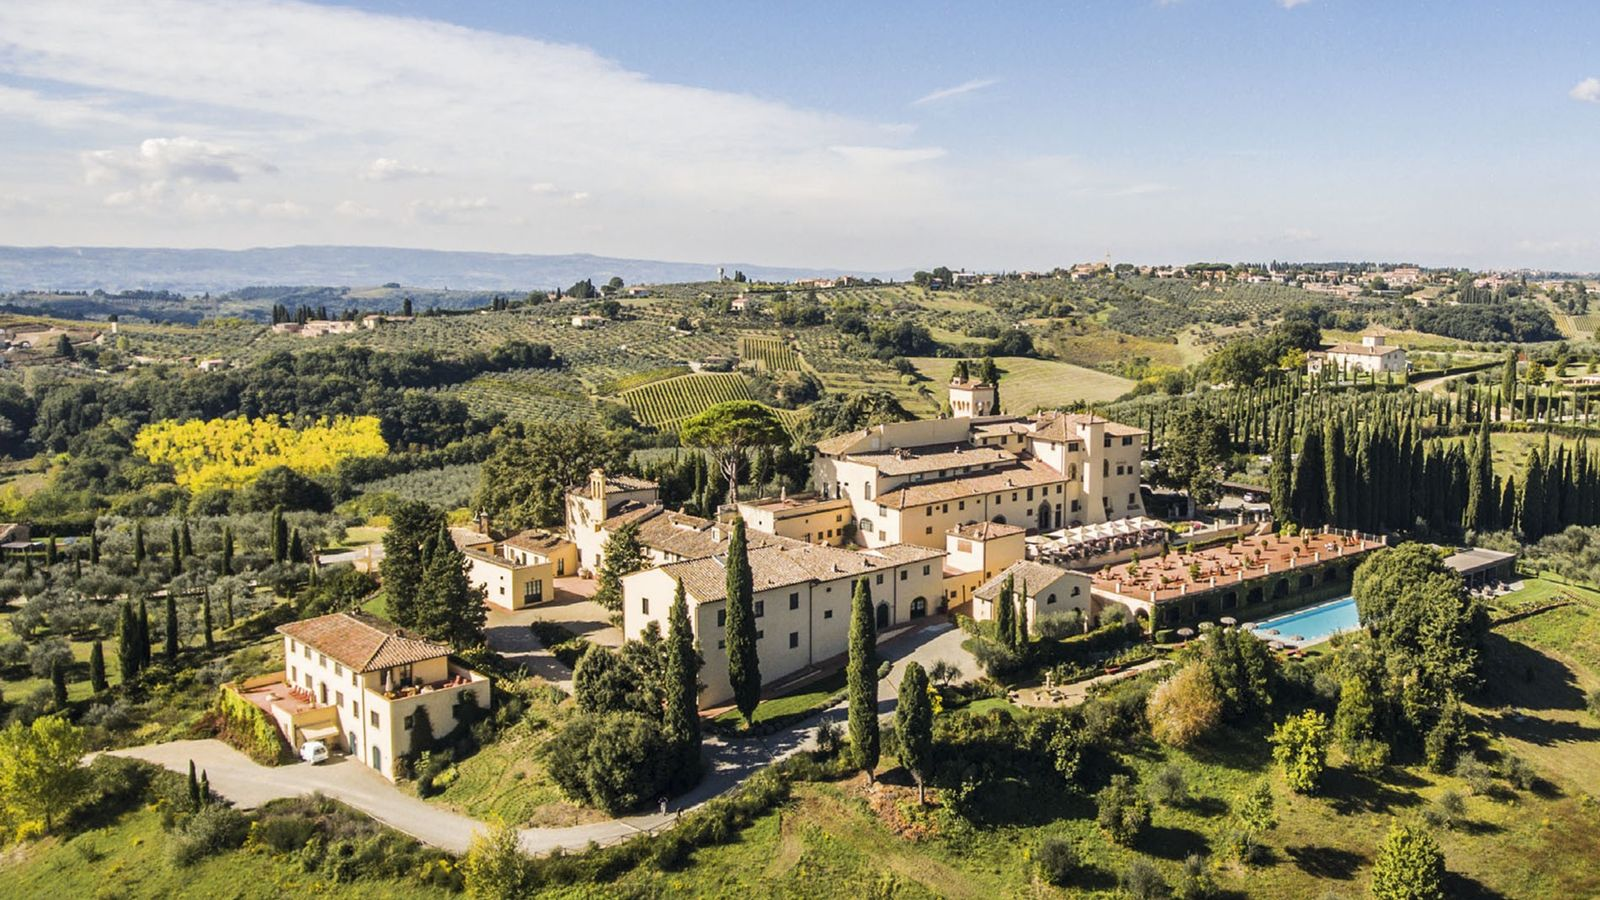 Aerial view of Castello del Nero Hotel and Spa in the countryside